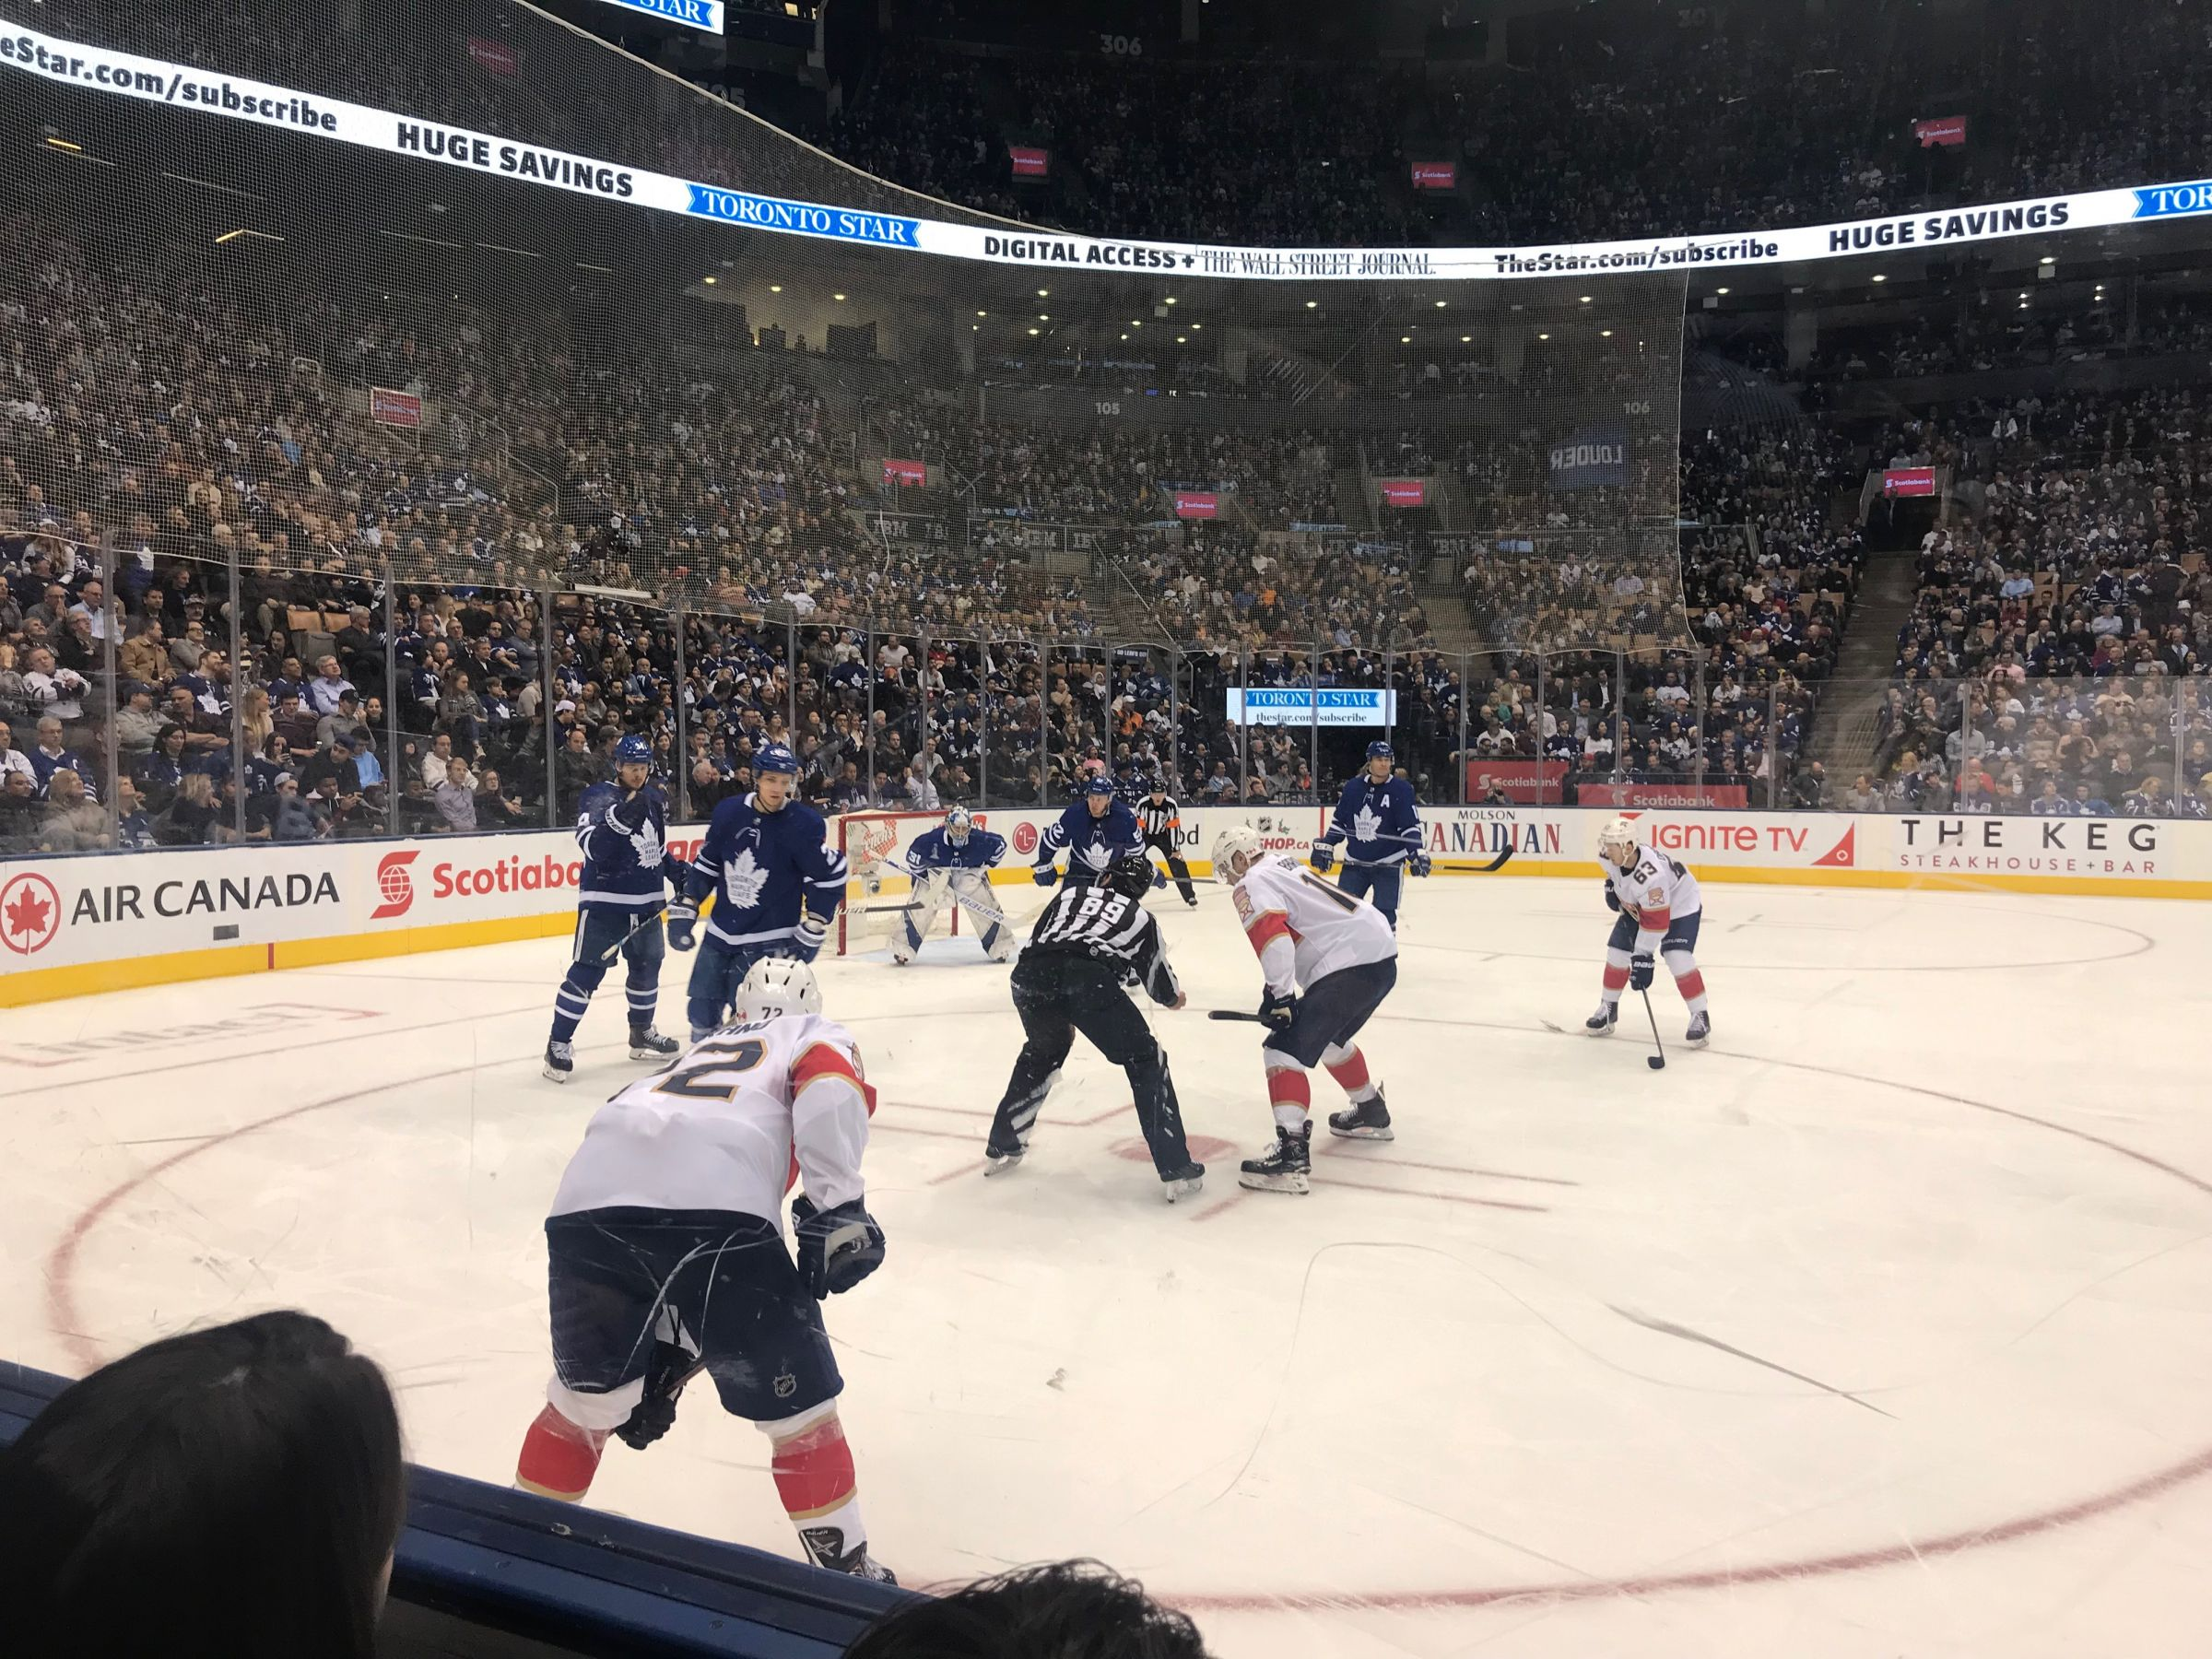 Toronto Maple Leafs Seat View for Scotiabank Arena Section 120, Row 2, Seat 20